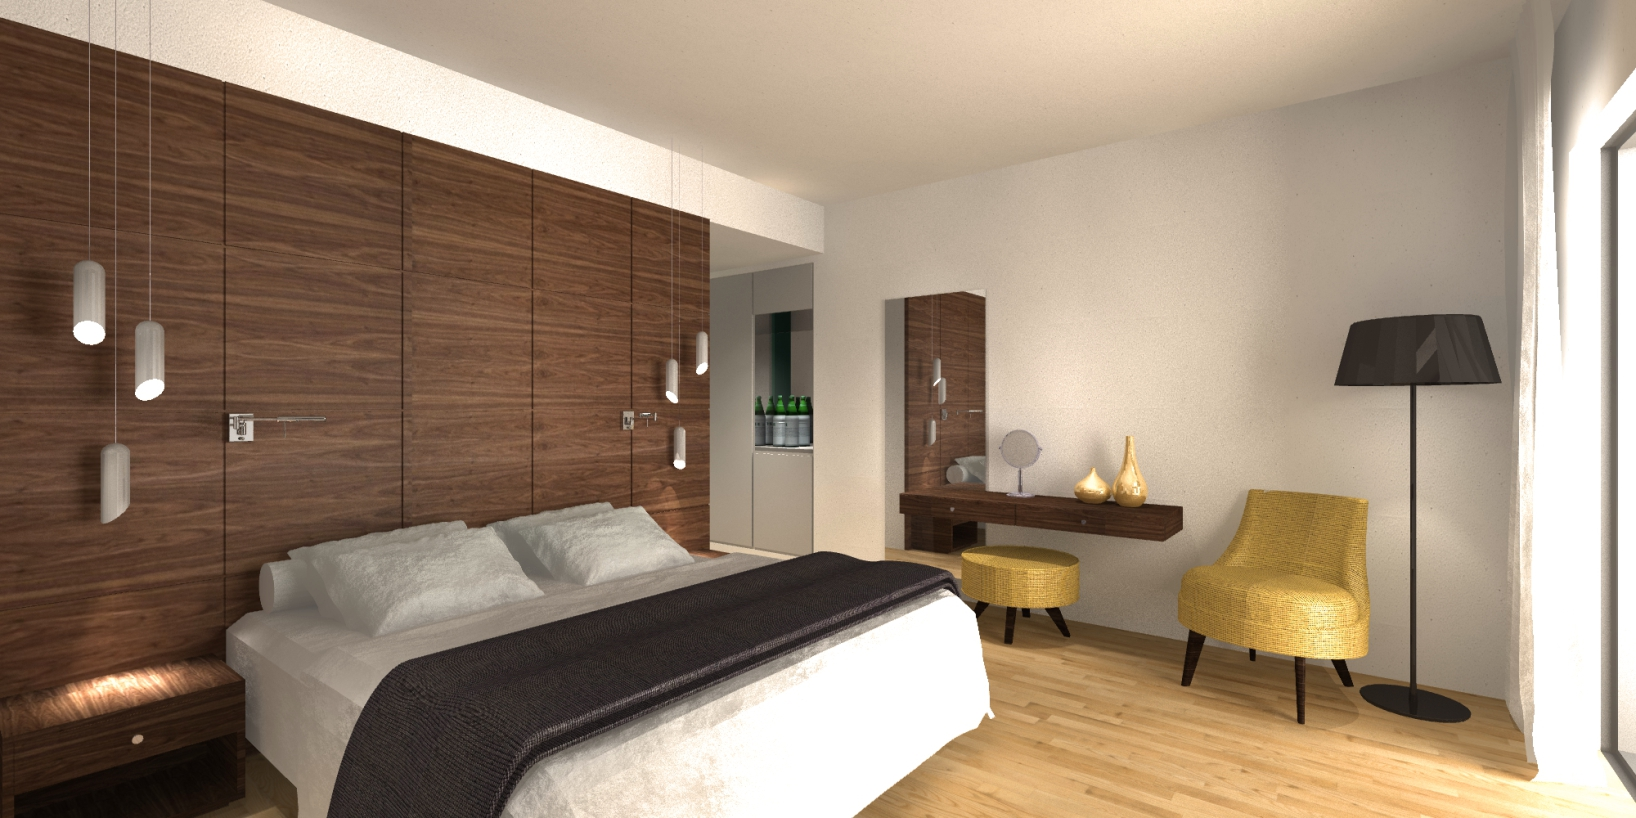 An island hotel room interior for Hotel room interior images